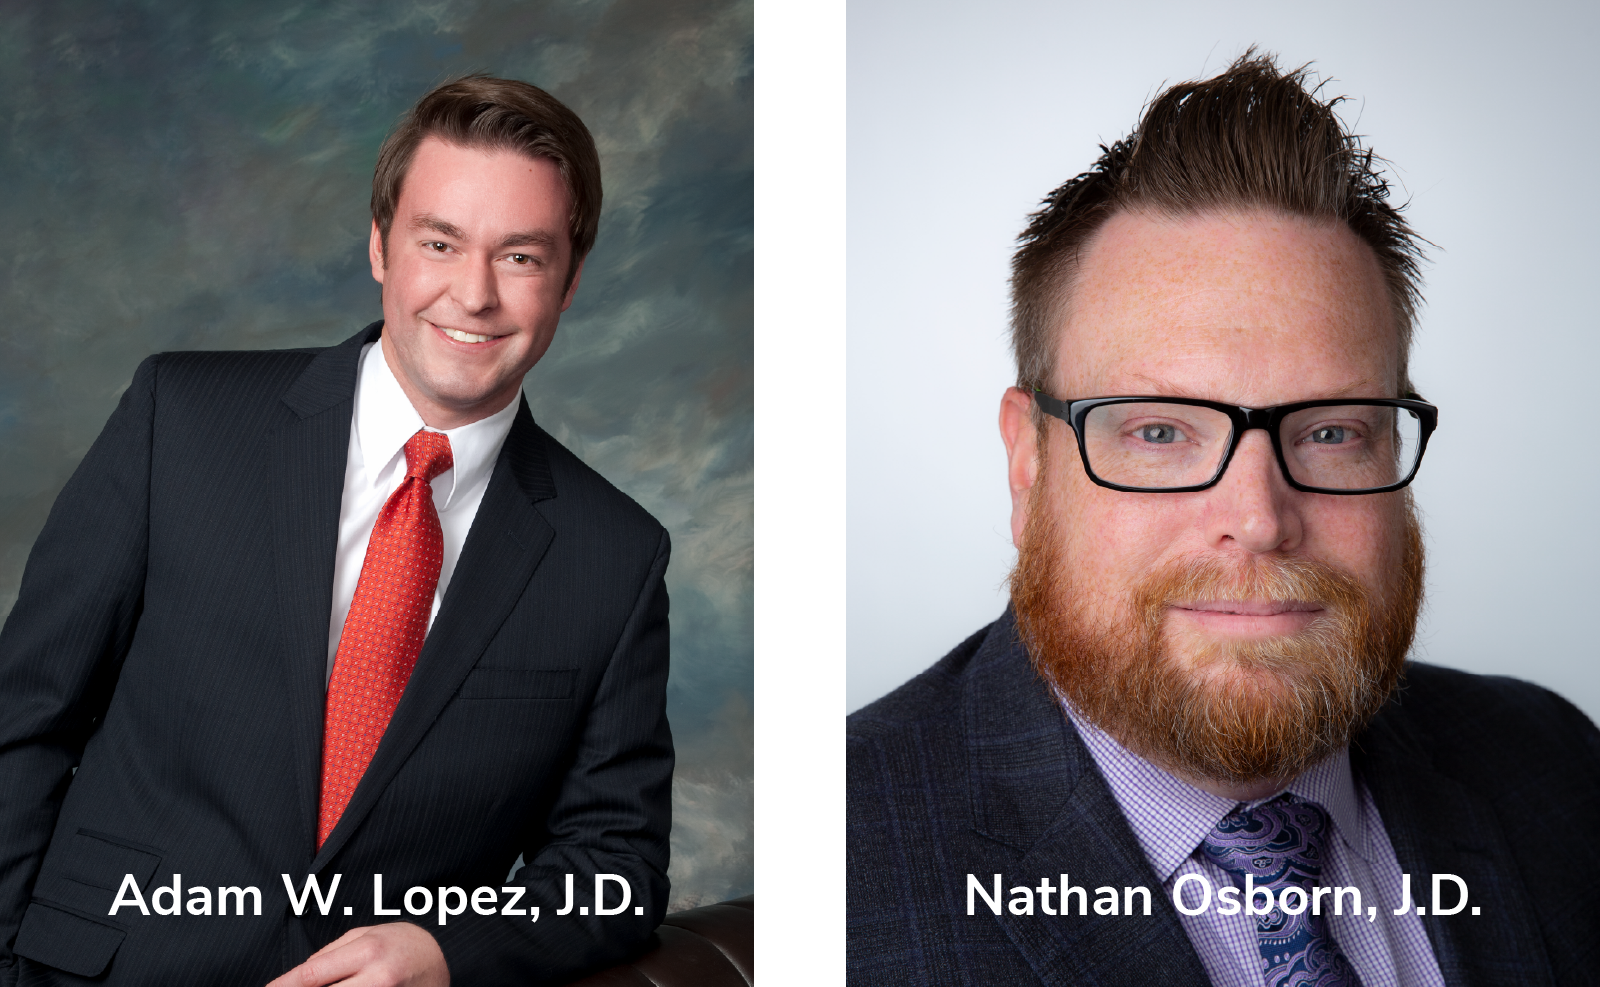 Osborn and Lopez Latest Additions to Planning Team